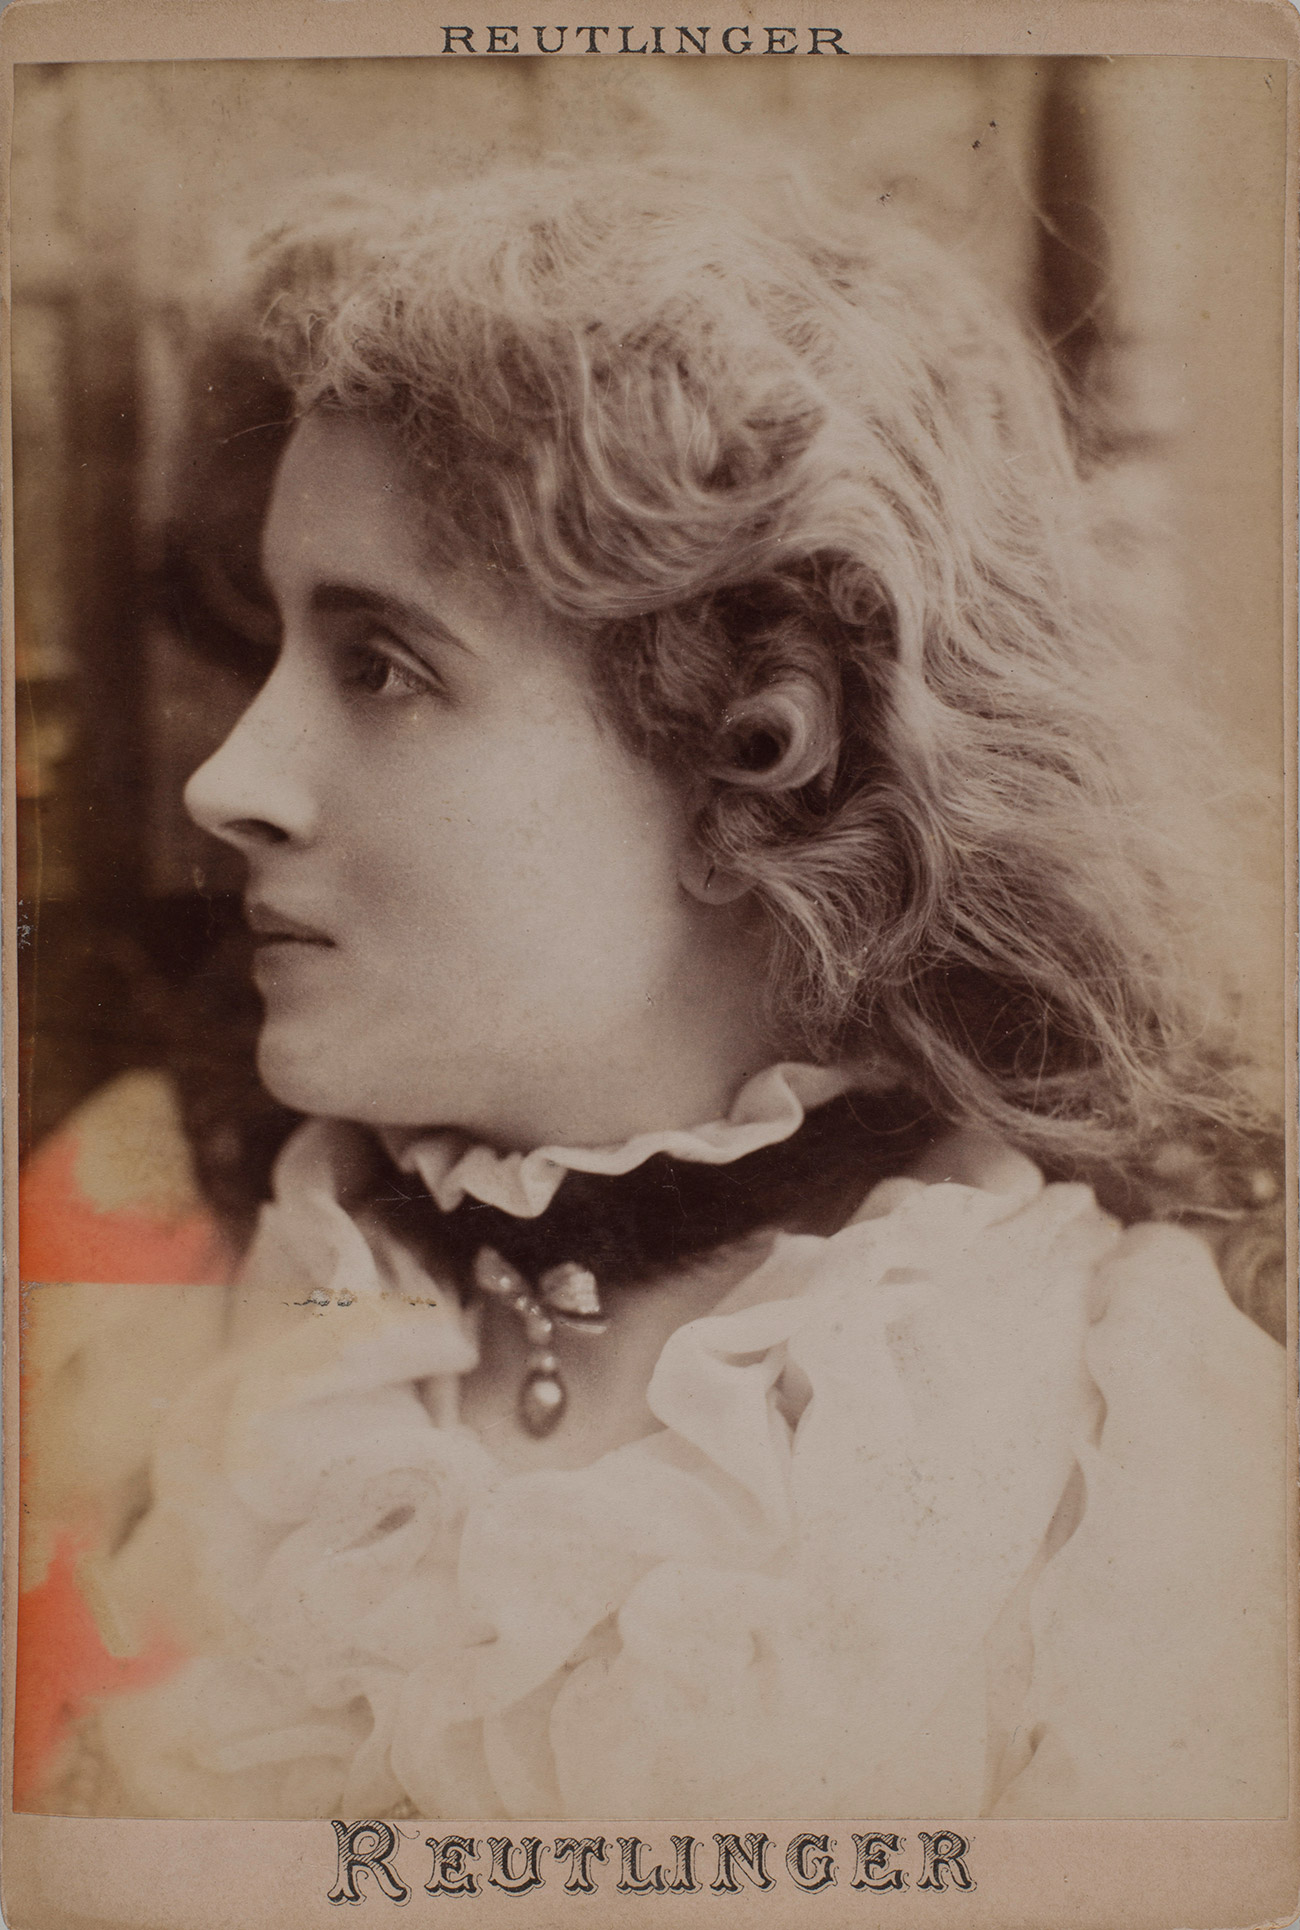 Sepia toned side portrait of a woman wearing white ruffles and a black neck band.